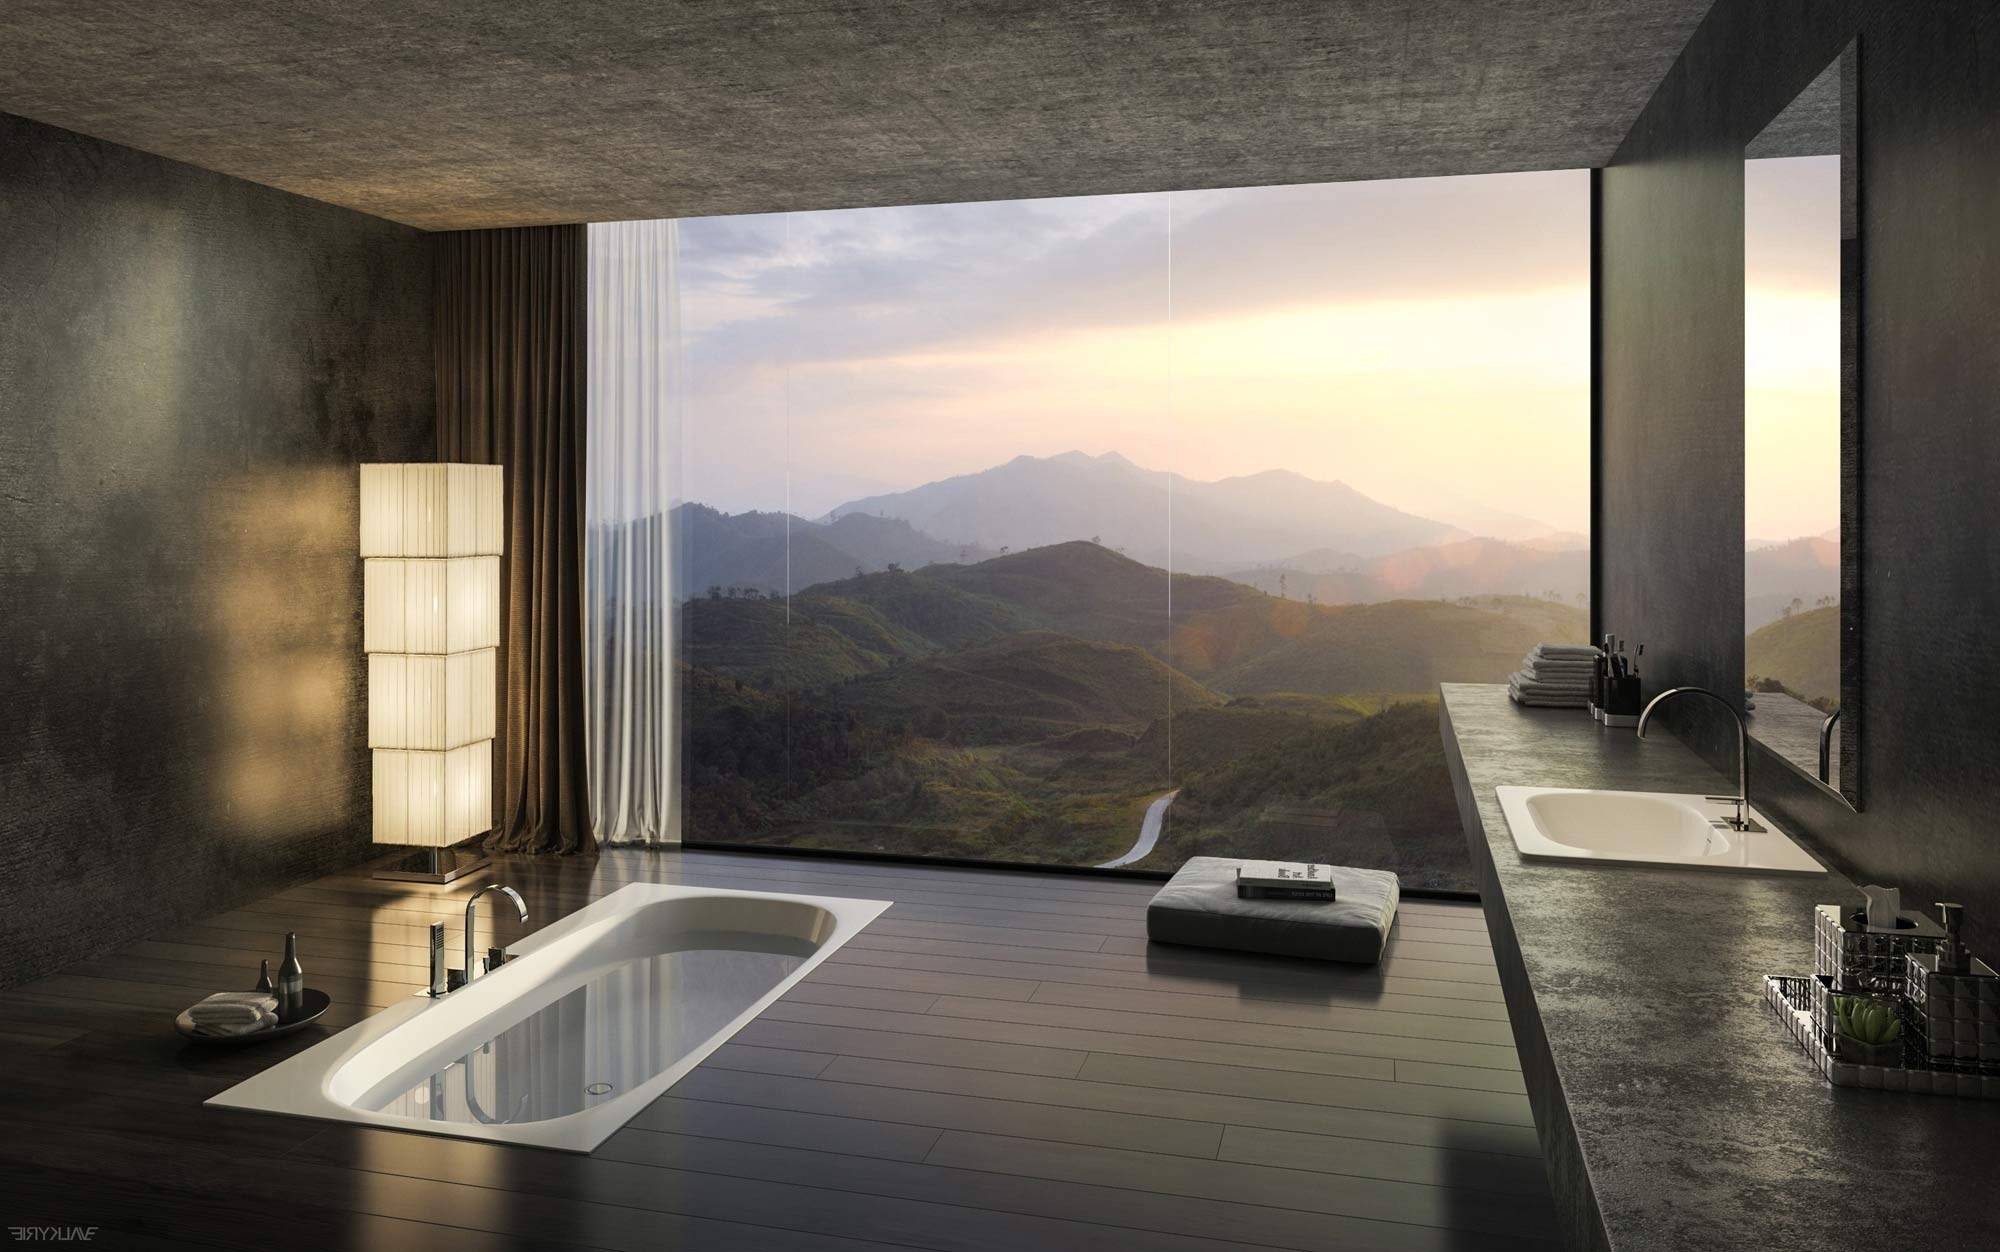 Extravagant Bathrooms Ways To Make Your Luxury Bathroom Look More Expensive